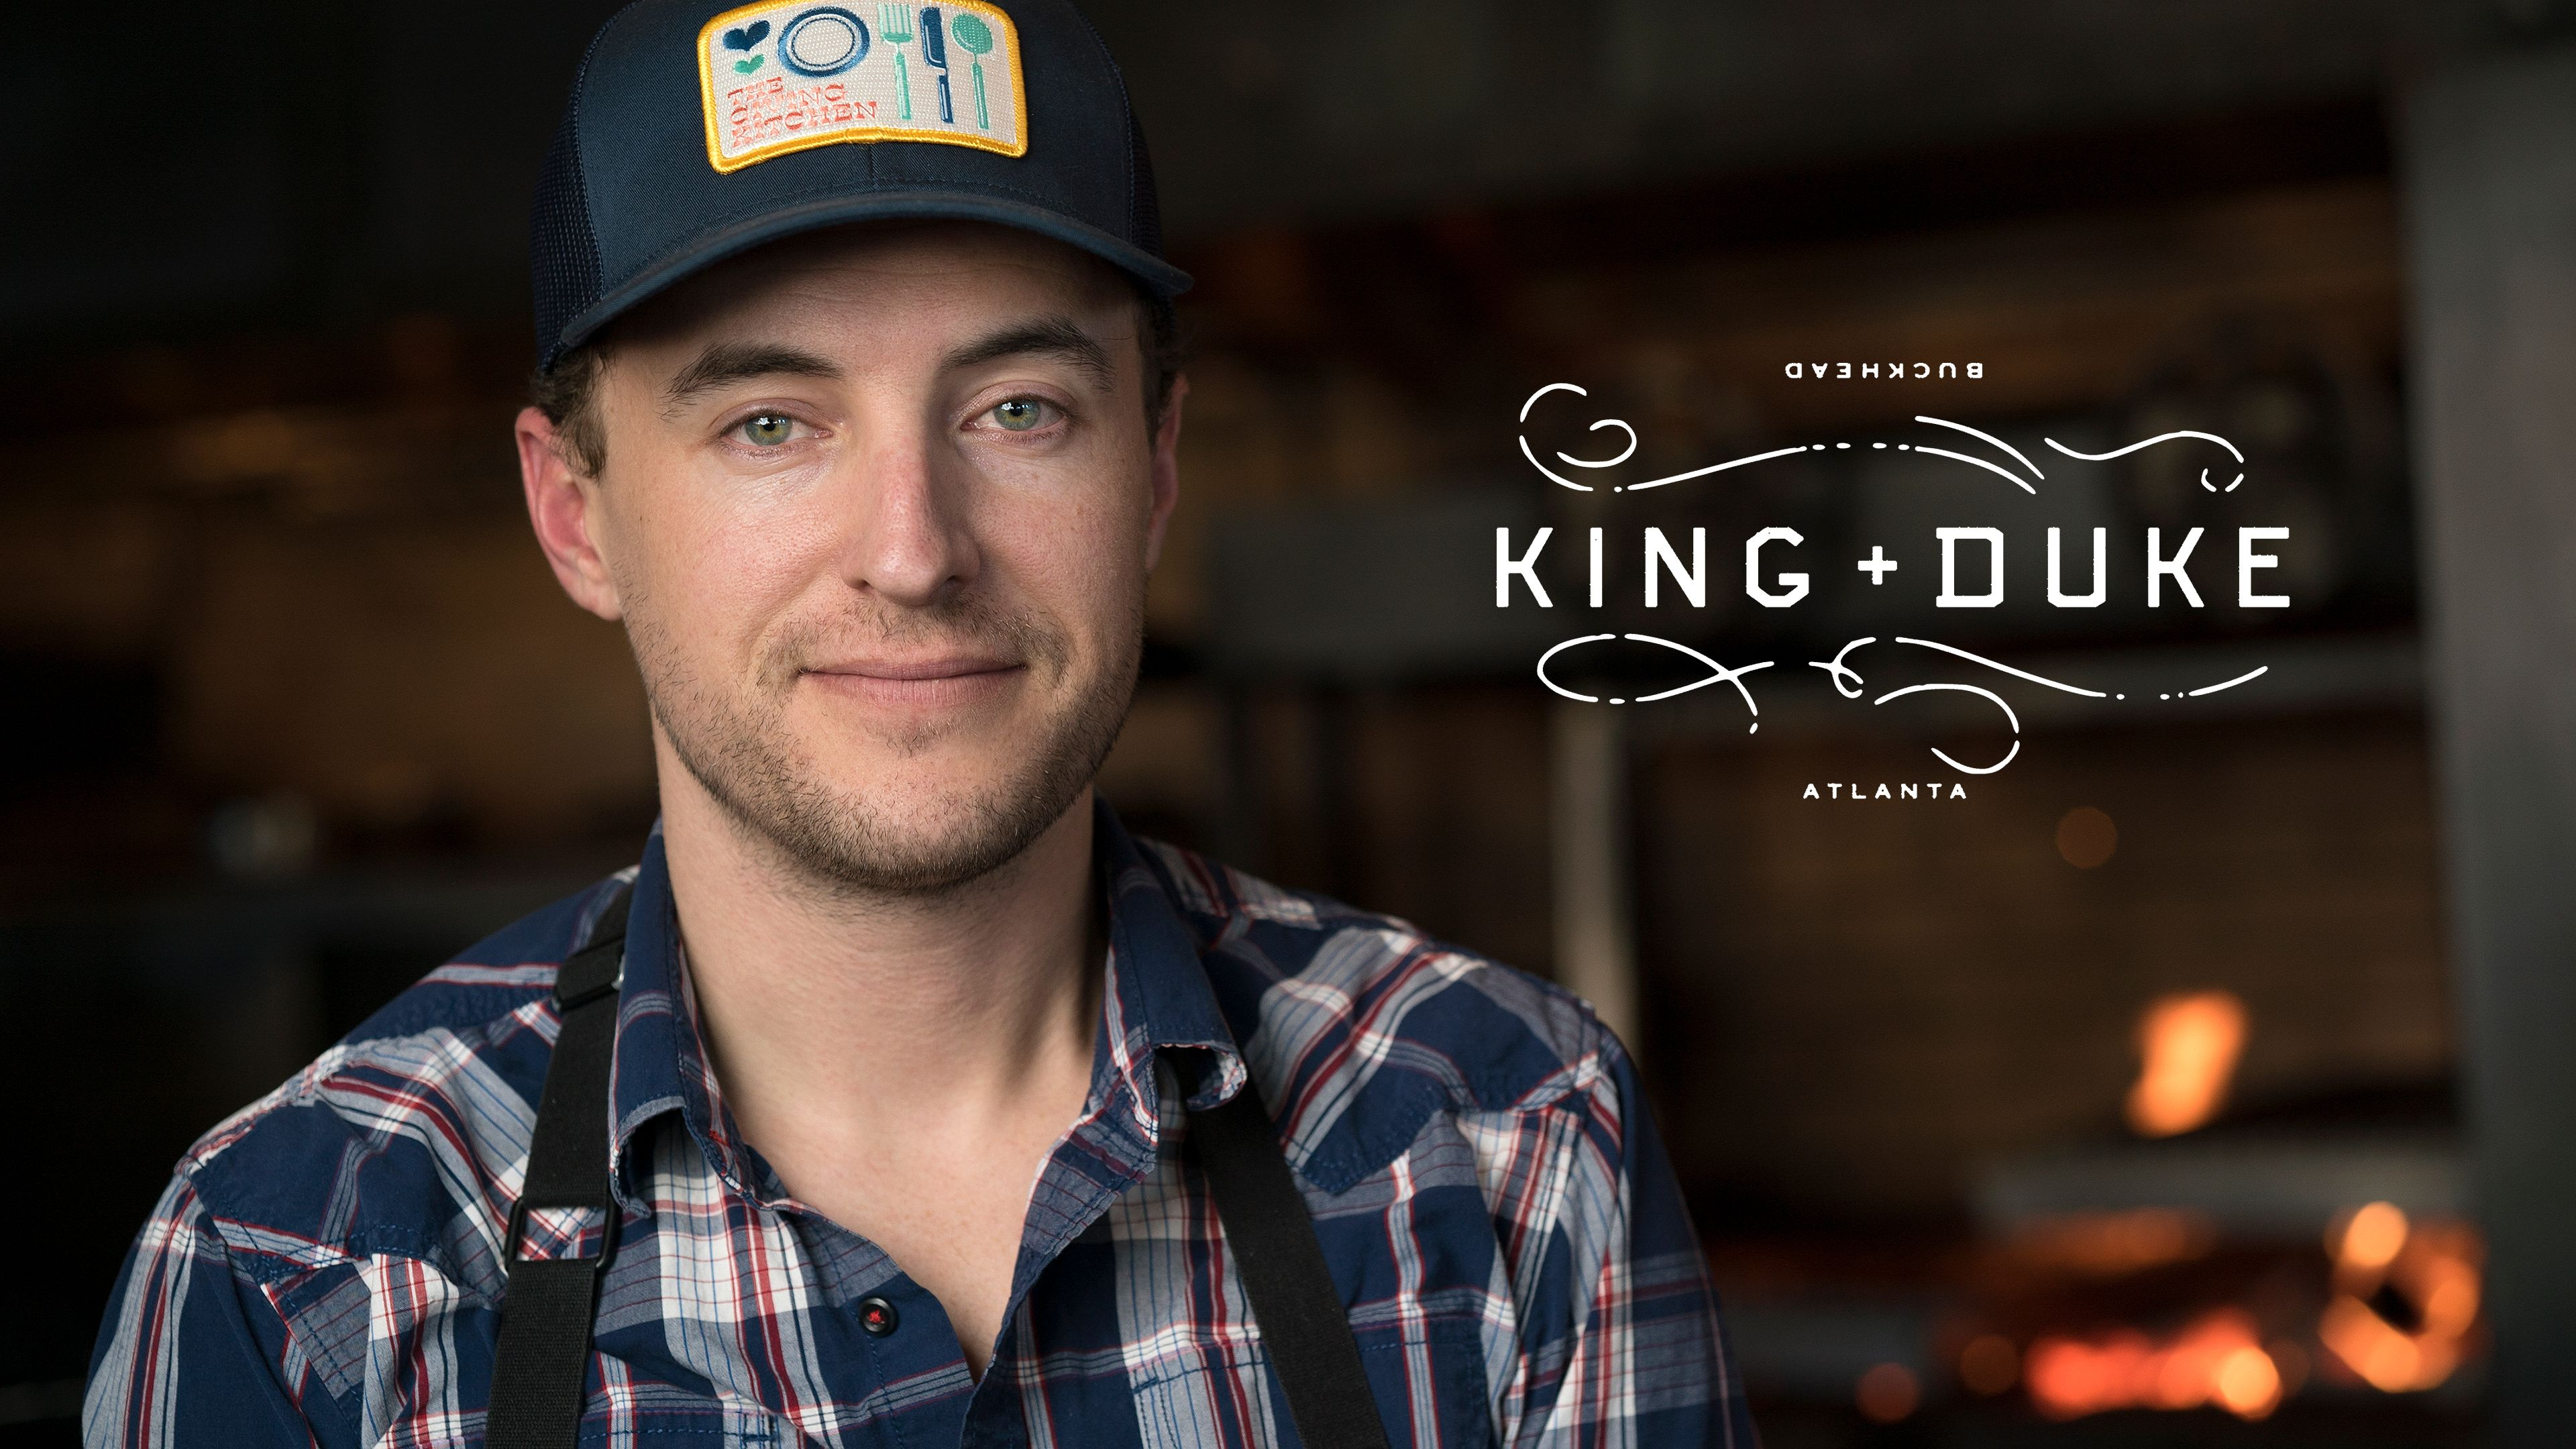 Executive Chef EJ Hodgkinson brings a lifelong passion for sustainable, organic food to the open-fire menu at King + Duke